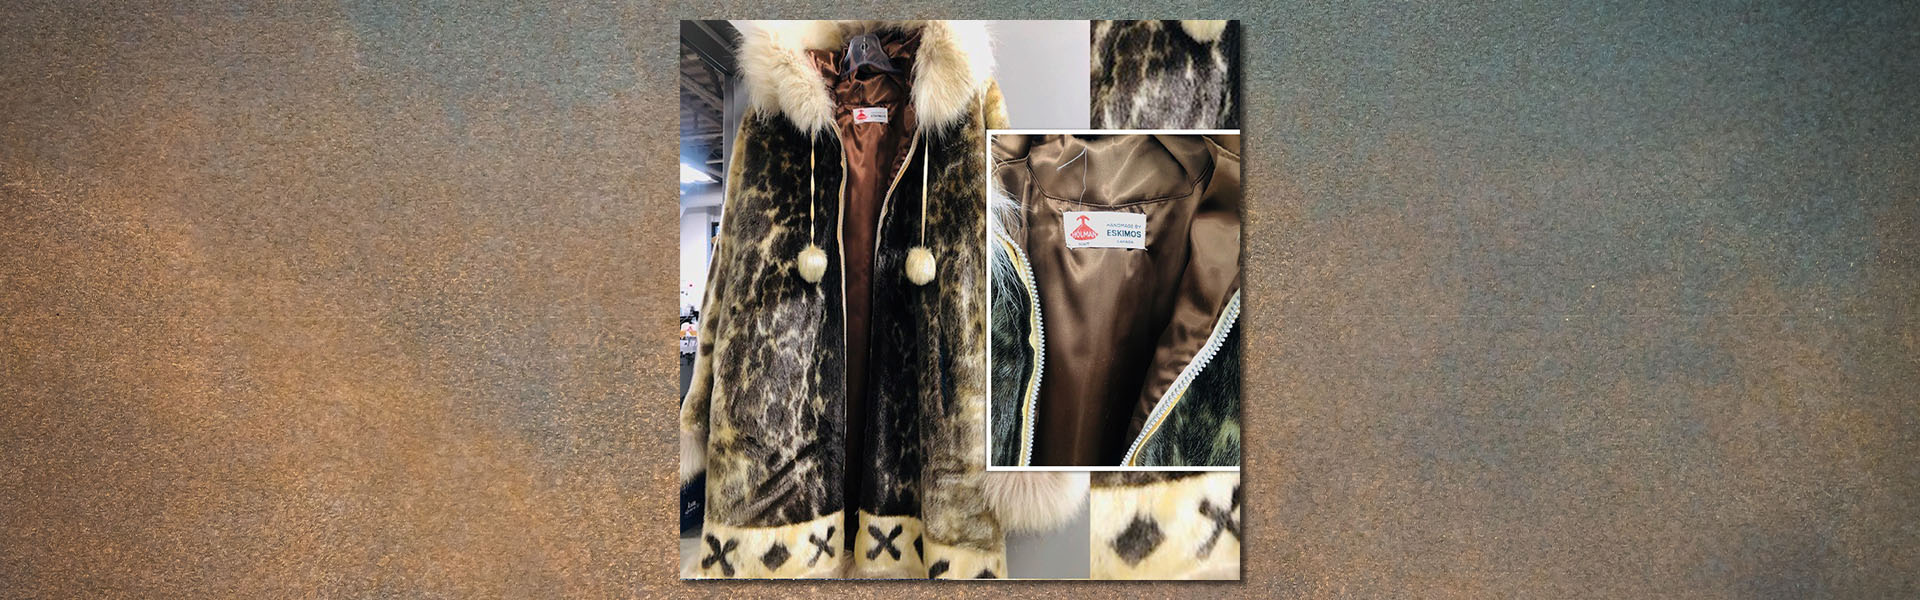 Rare Sealskin Parka Donated to Goodwill